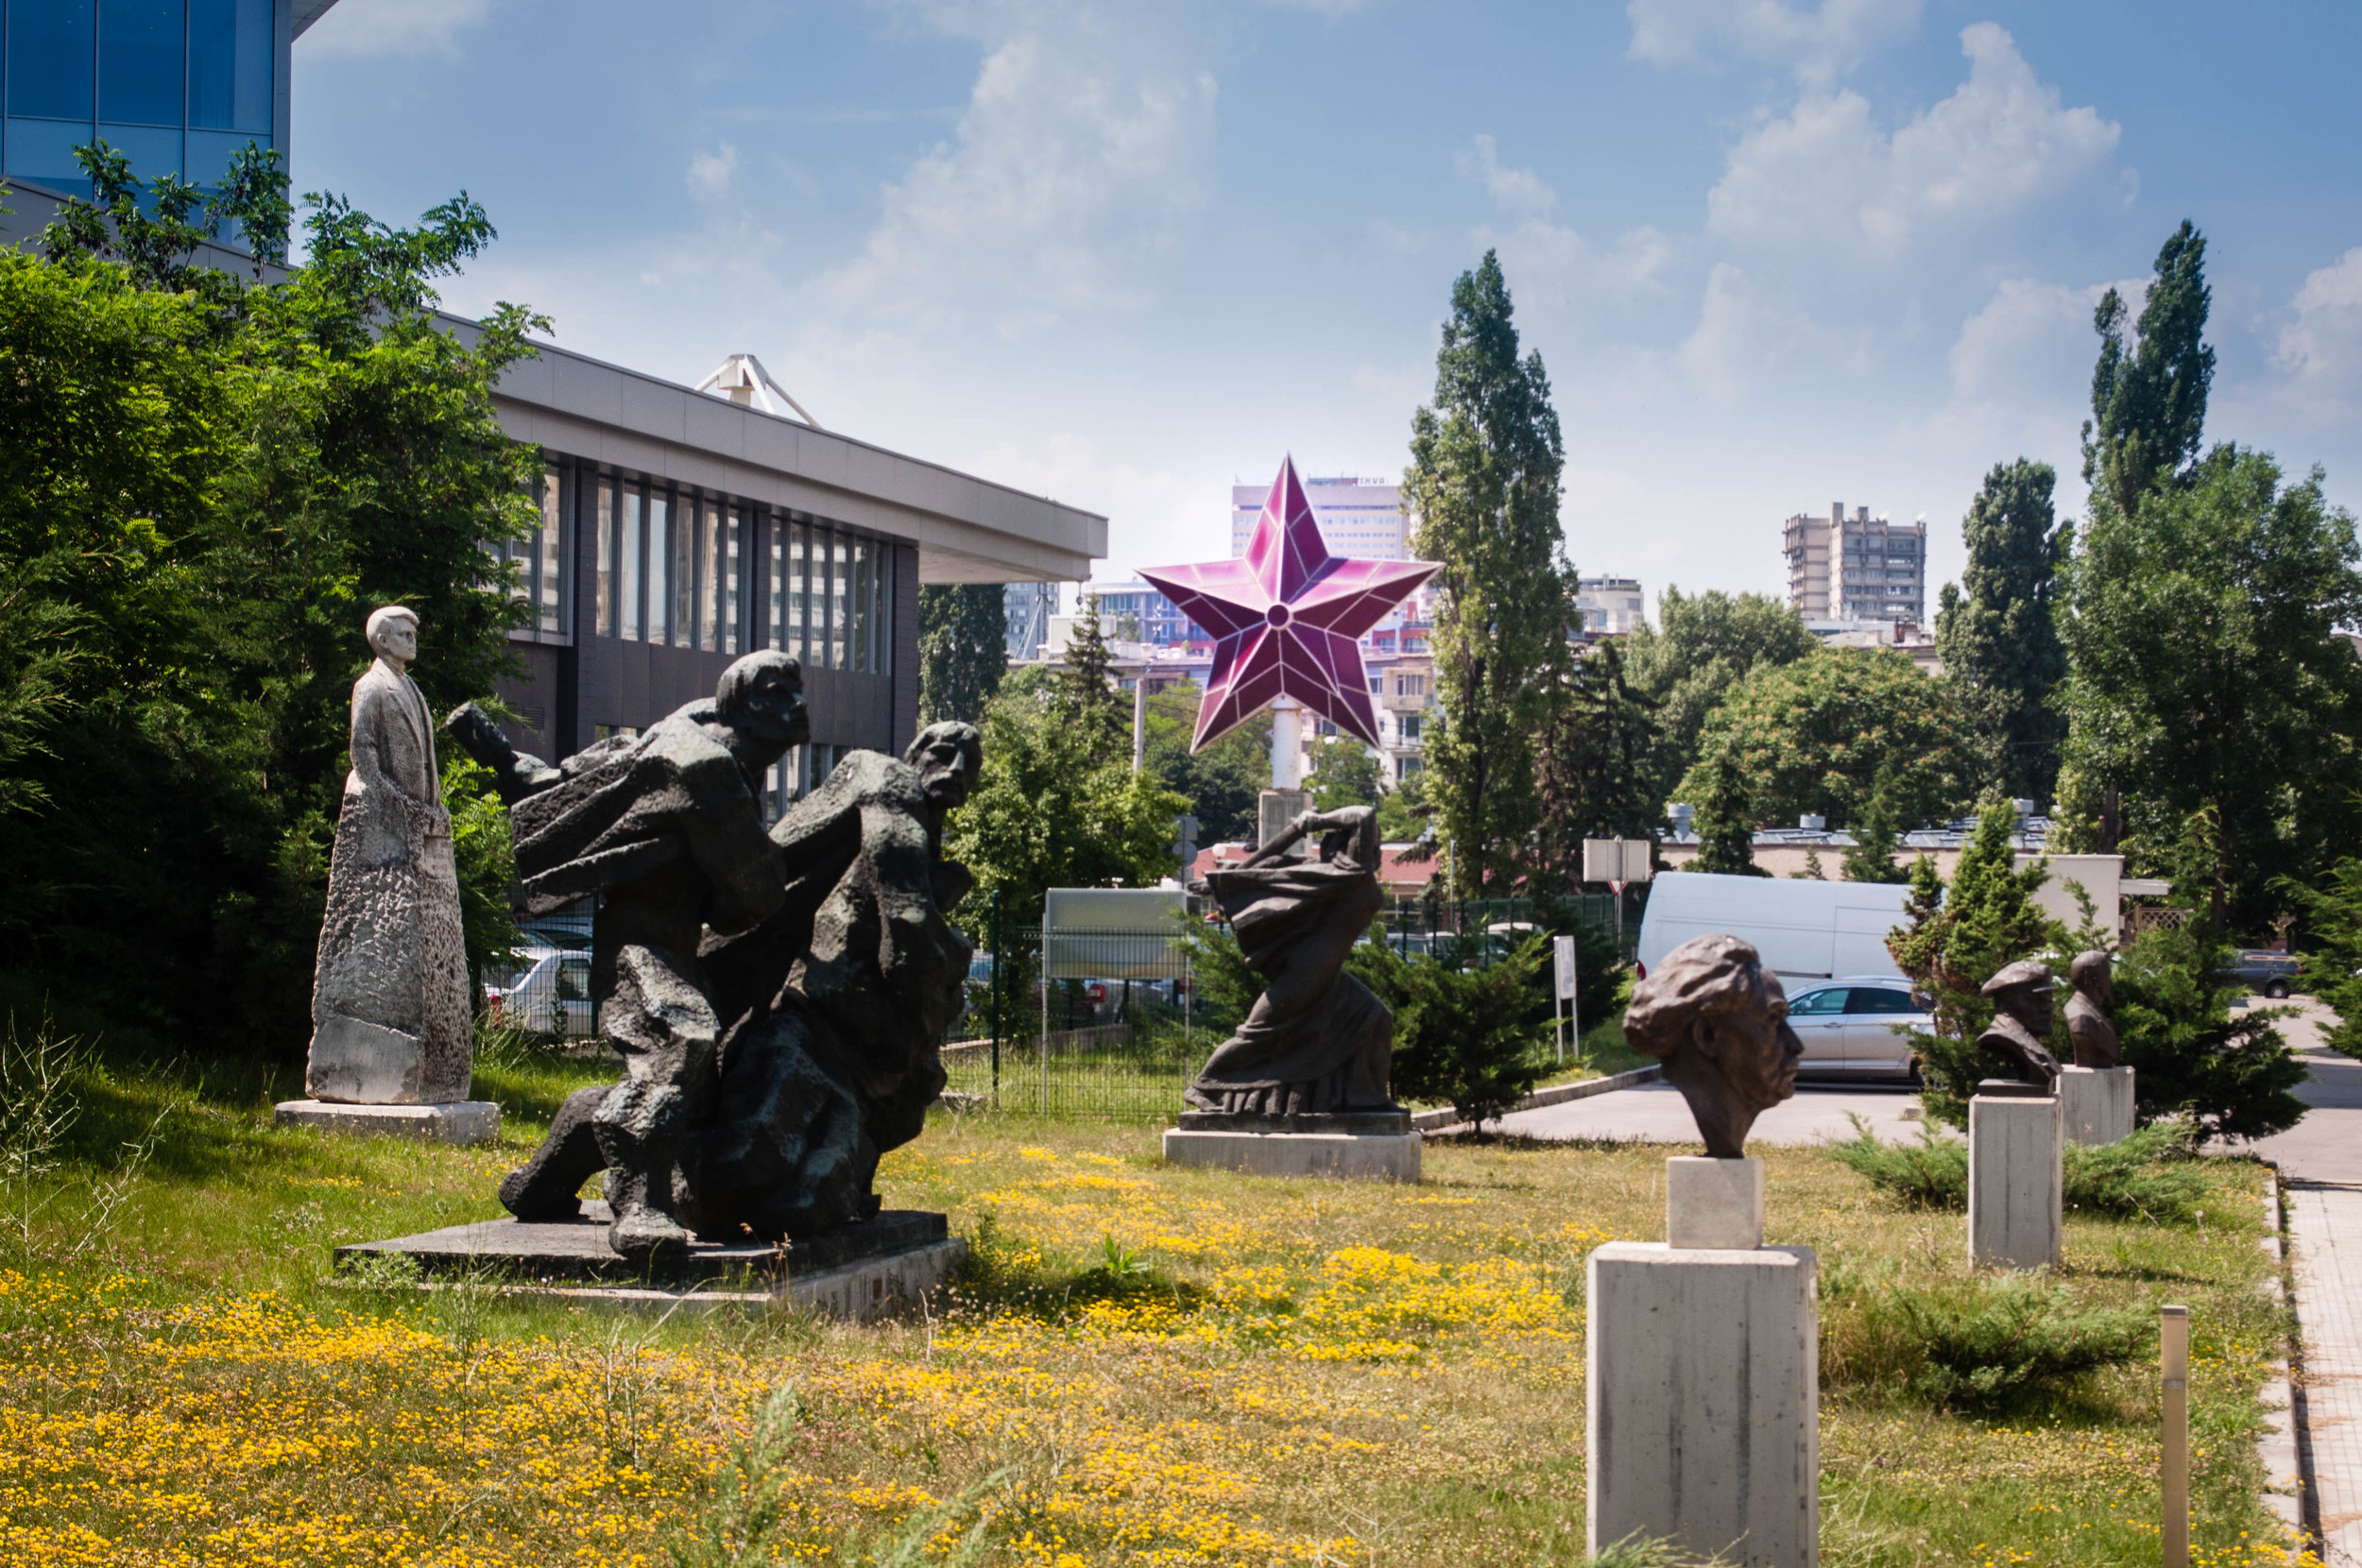 The statues and a red star from the Museum of Socialist Art is one of the must-see in a 2-day itinerary in Sofia (Bulgaria)